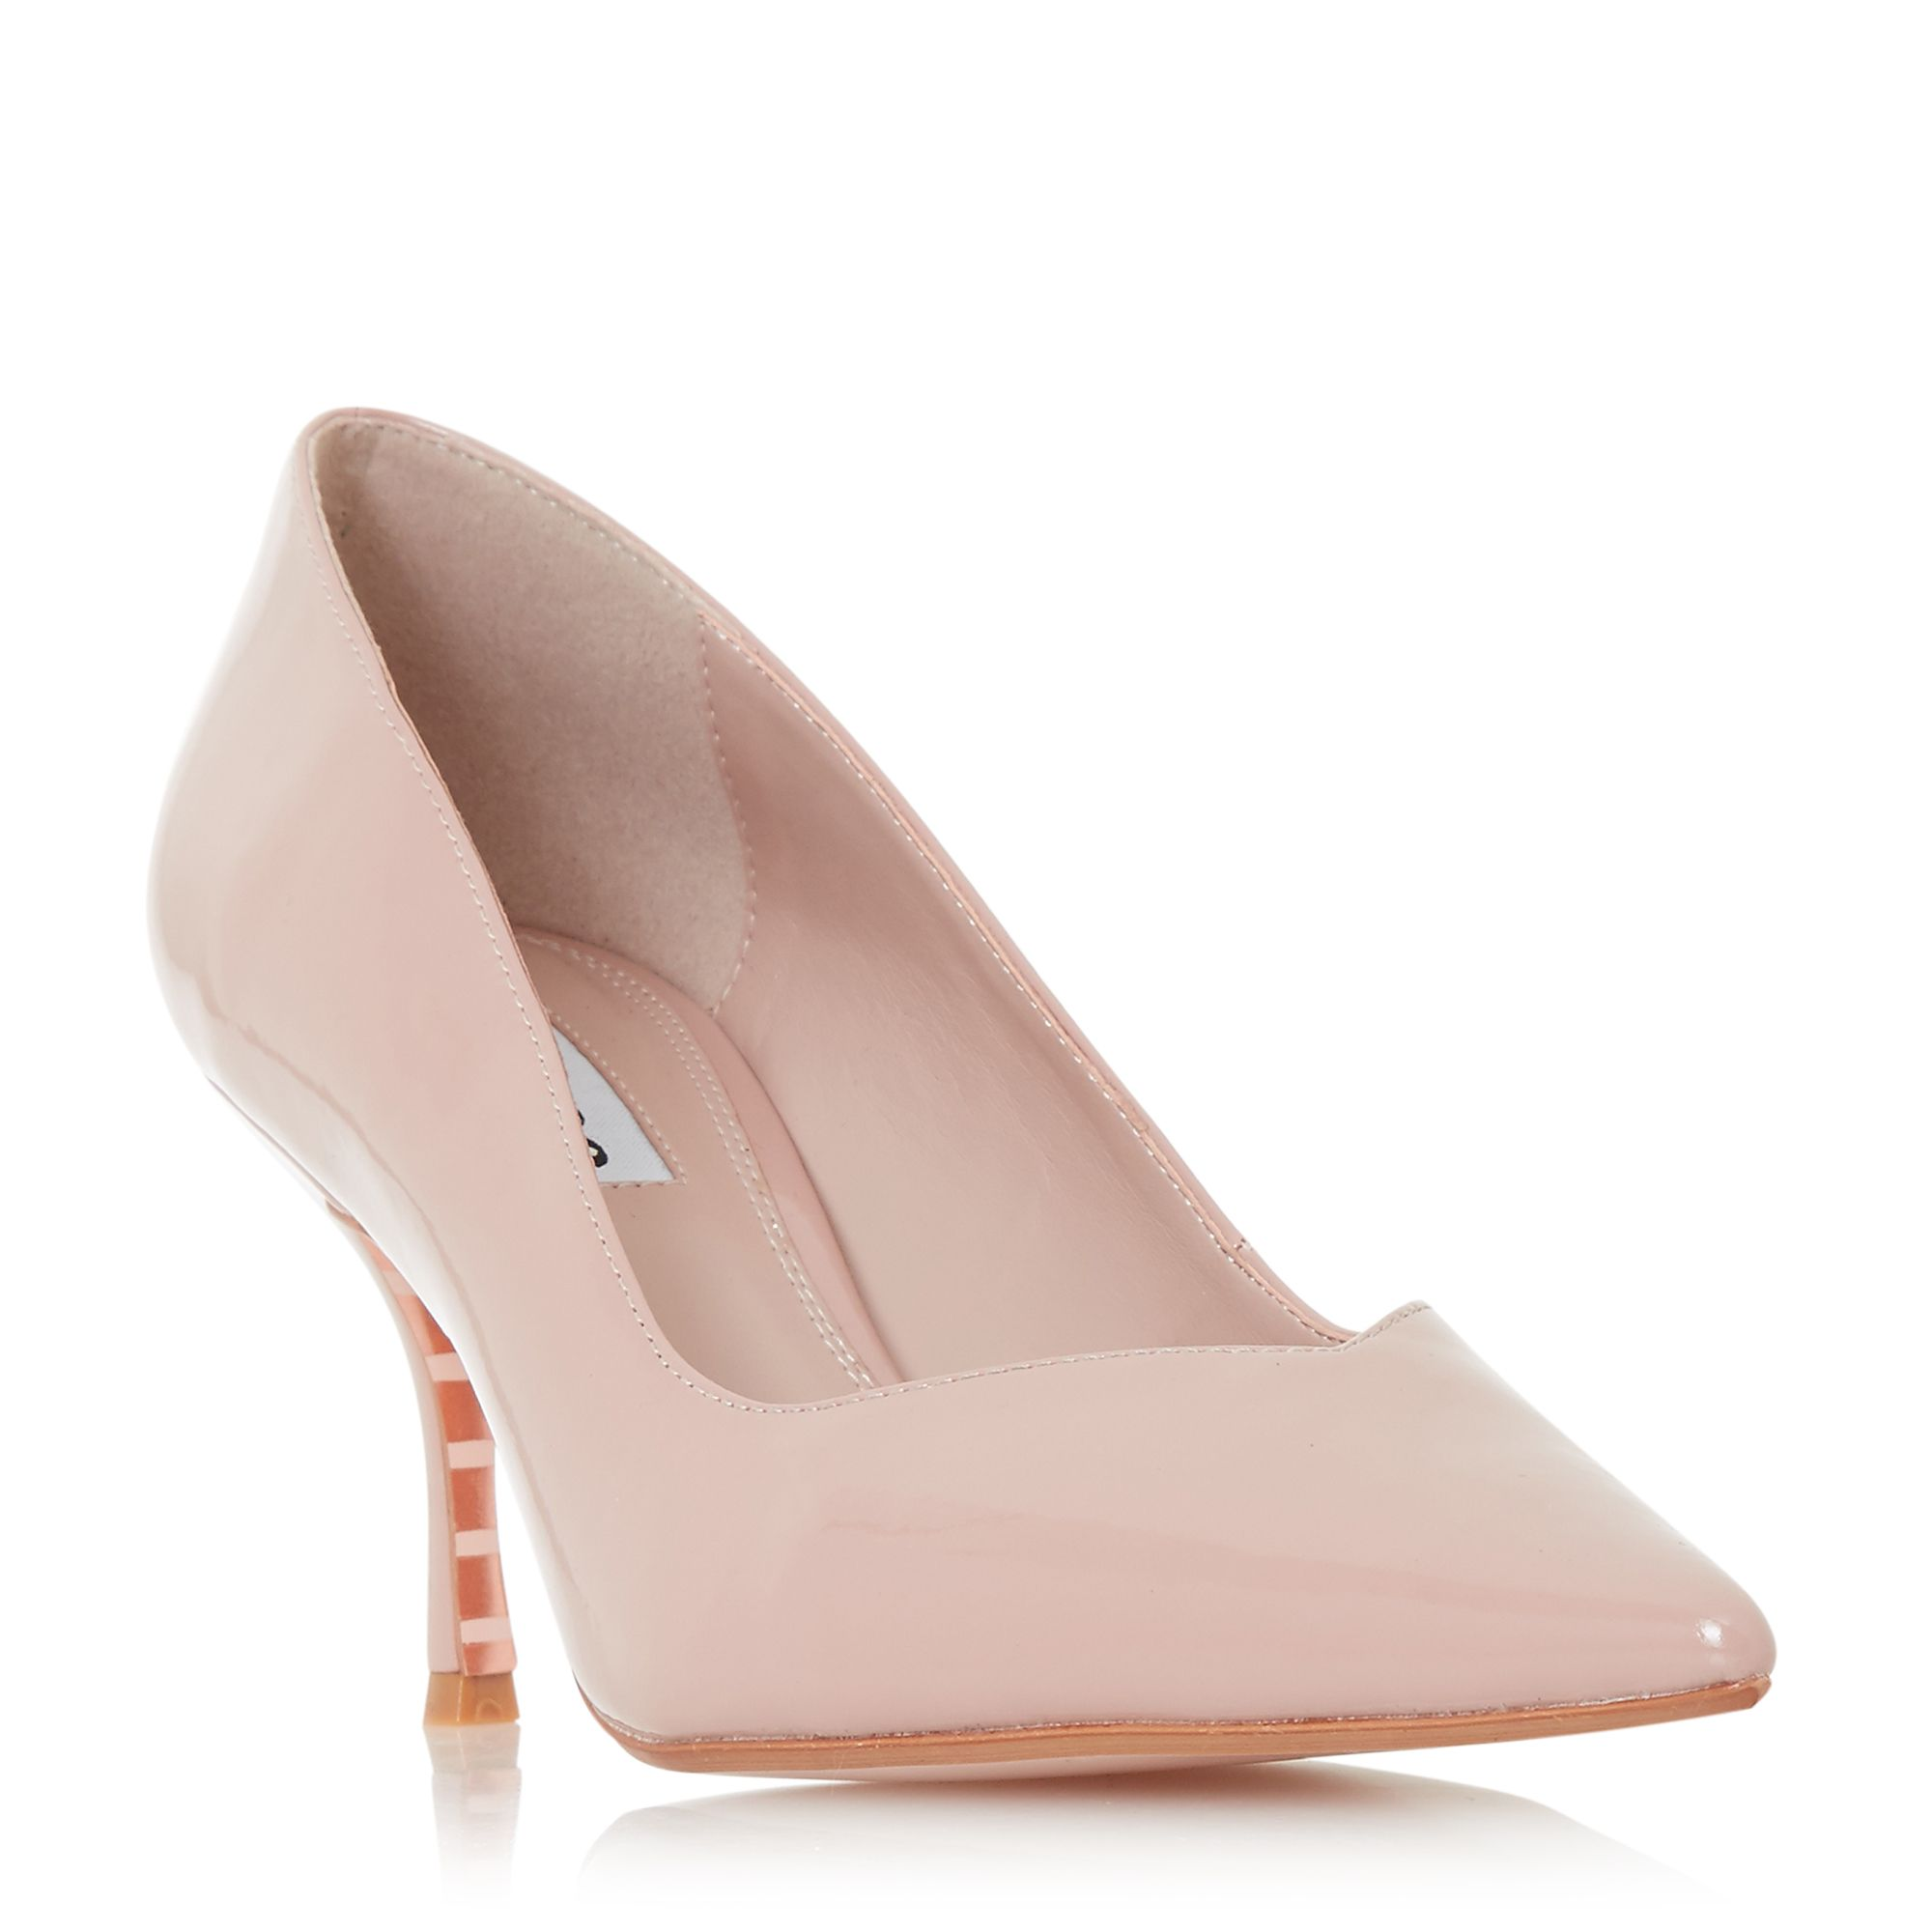 Dune Andersonn V-Cut Studded Court Shoes, Pink